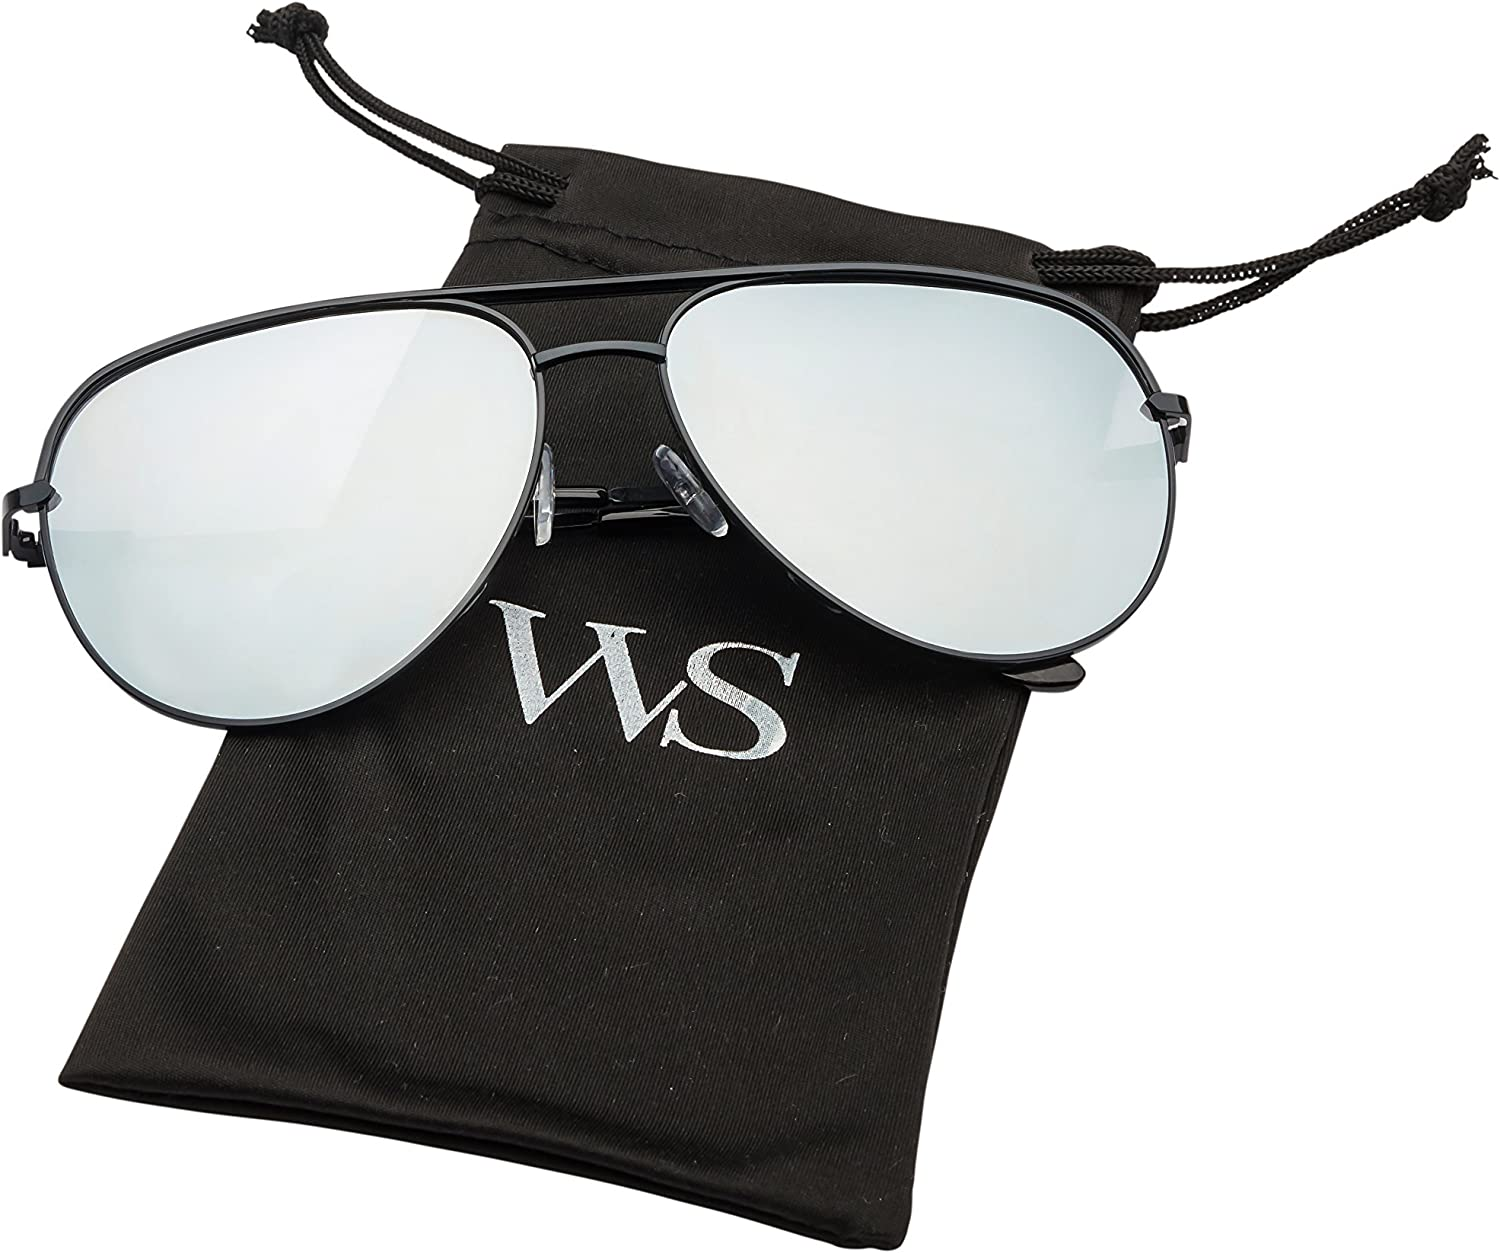 WealthyShades- Aviator sunglasses Mirrored flat lens | Oversized, Polarized For Women and Men UV400